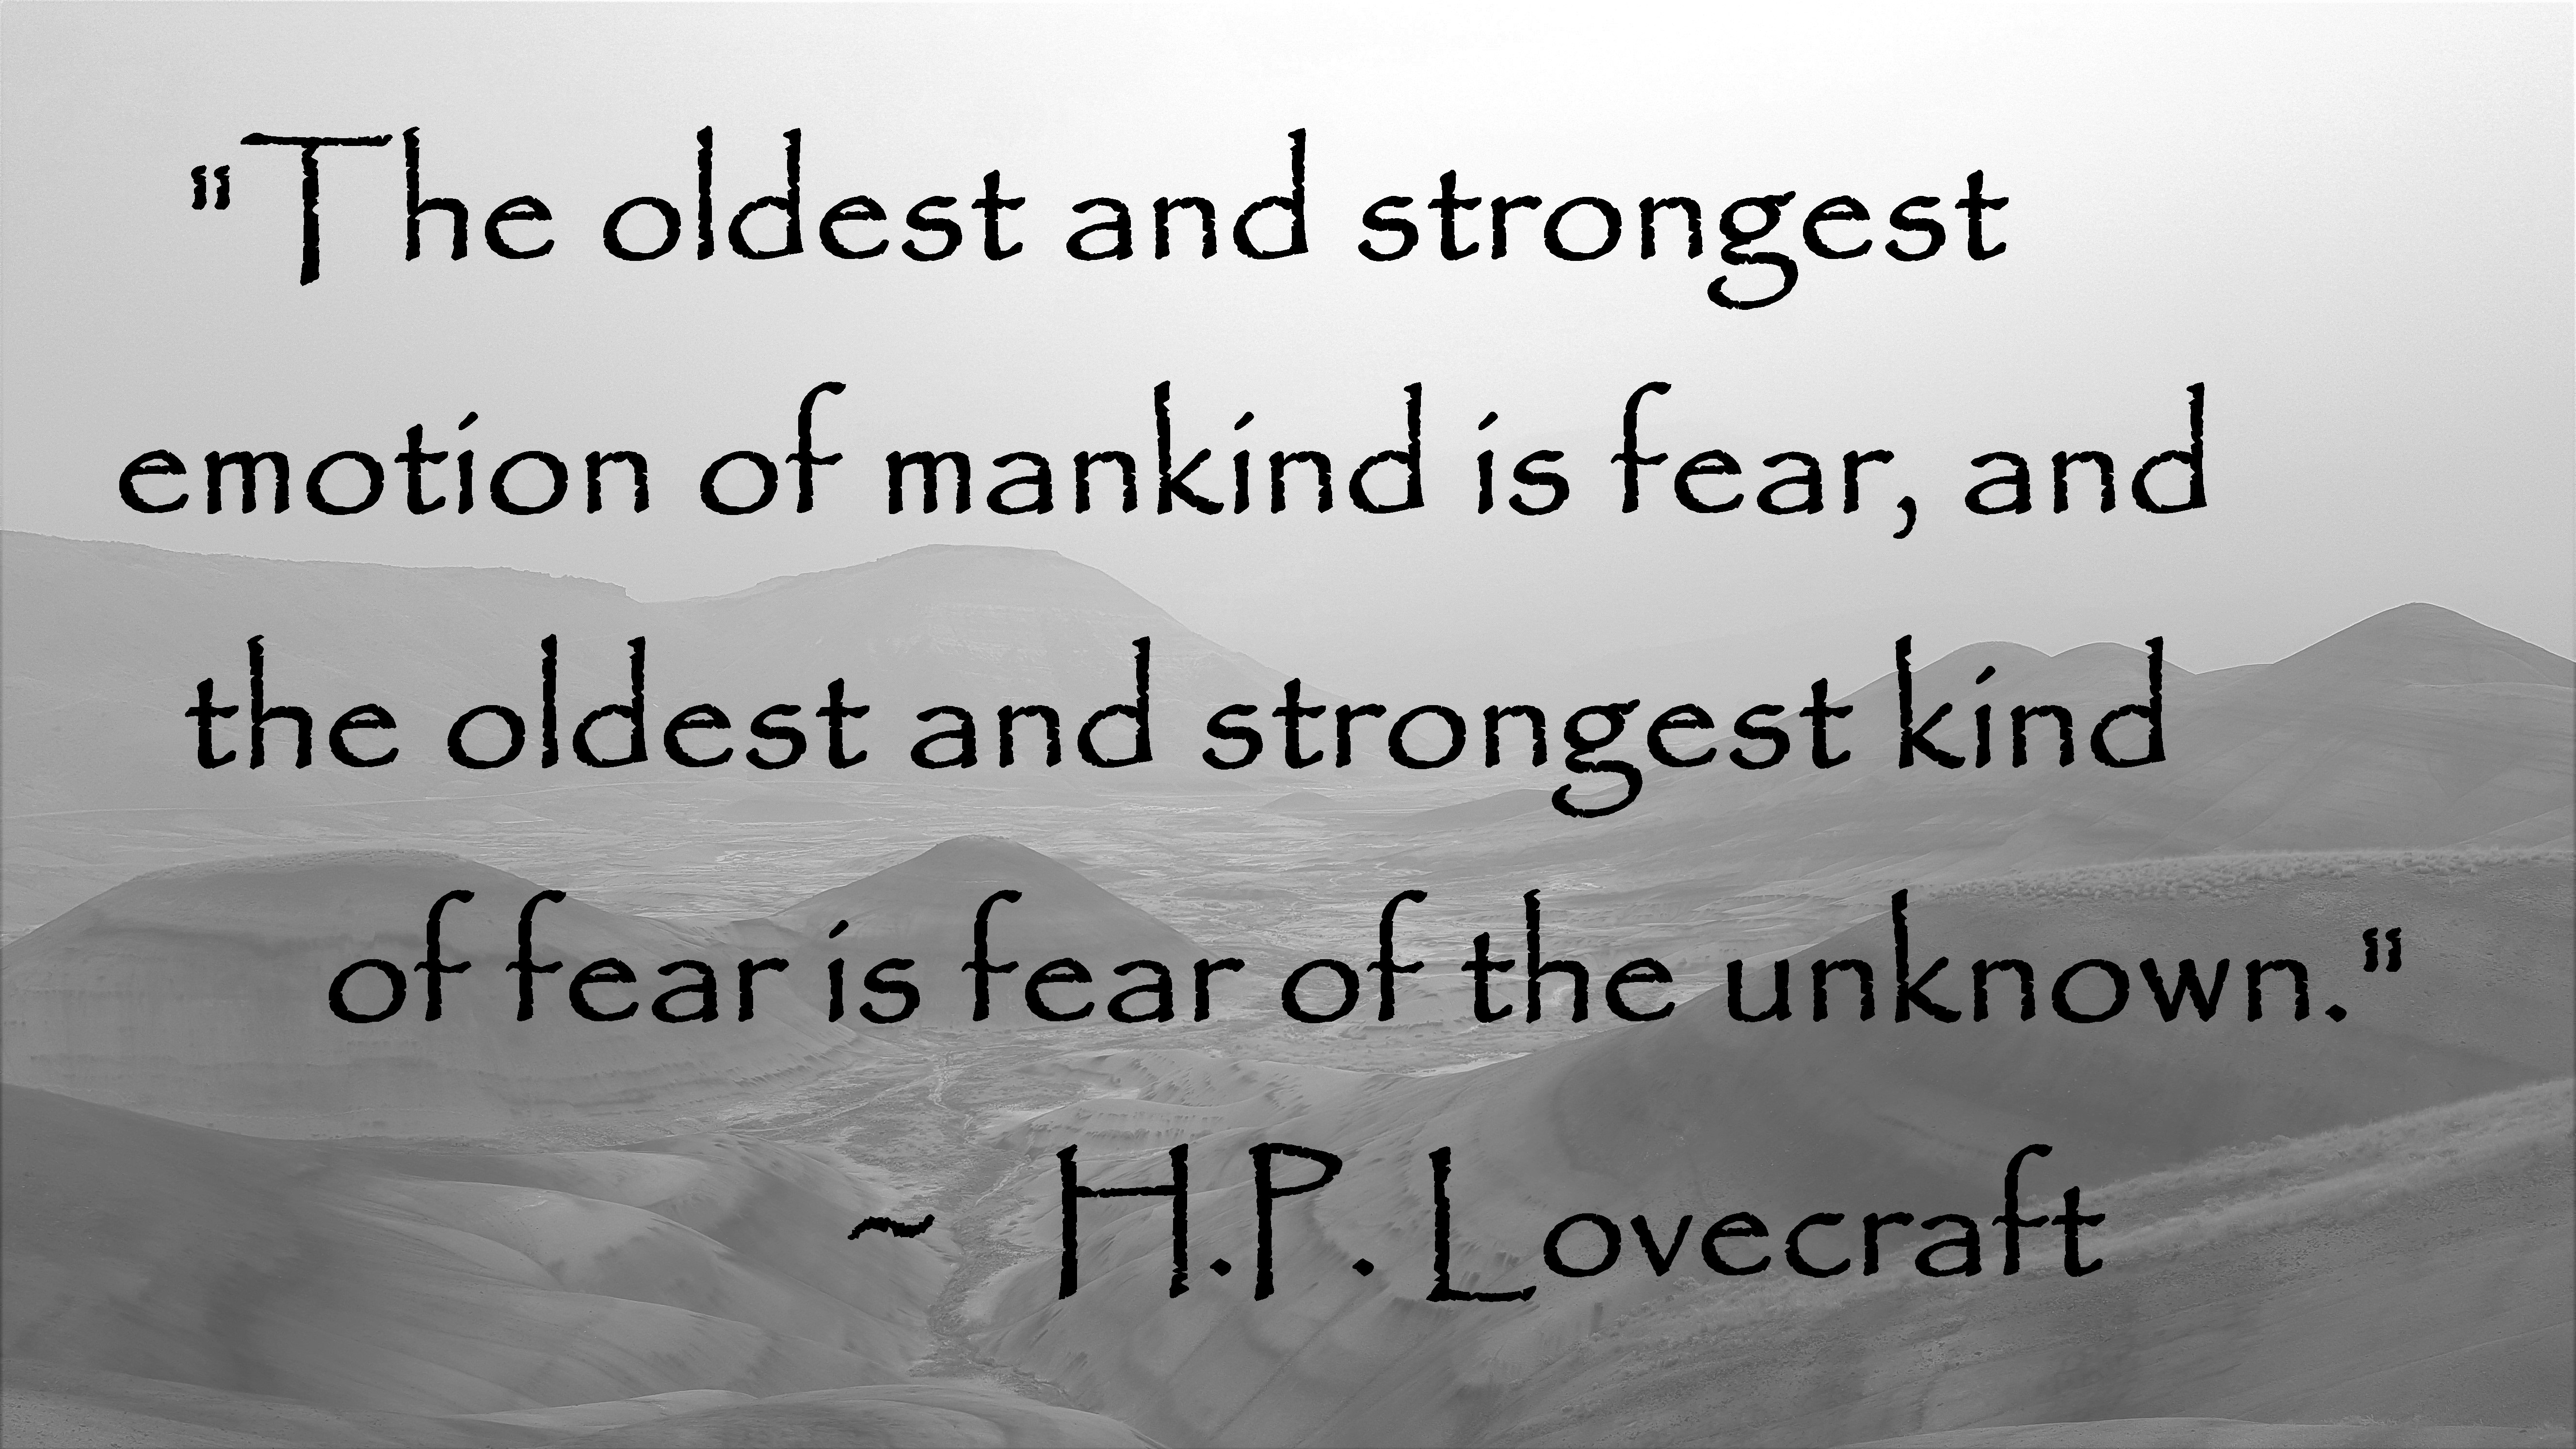 H P Lovecraft - Fear of the unknown